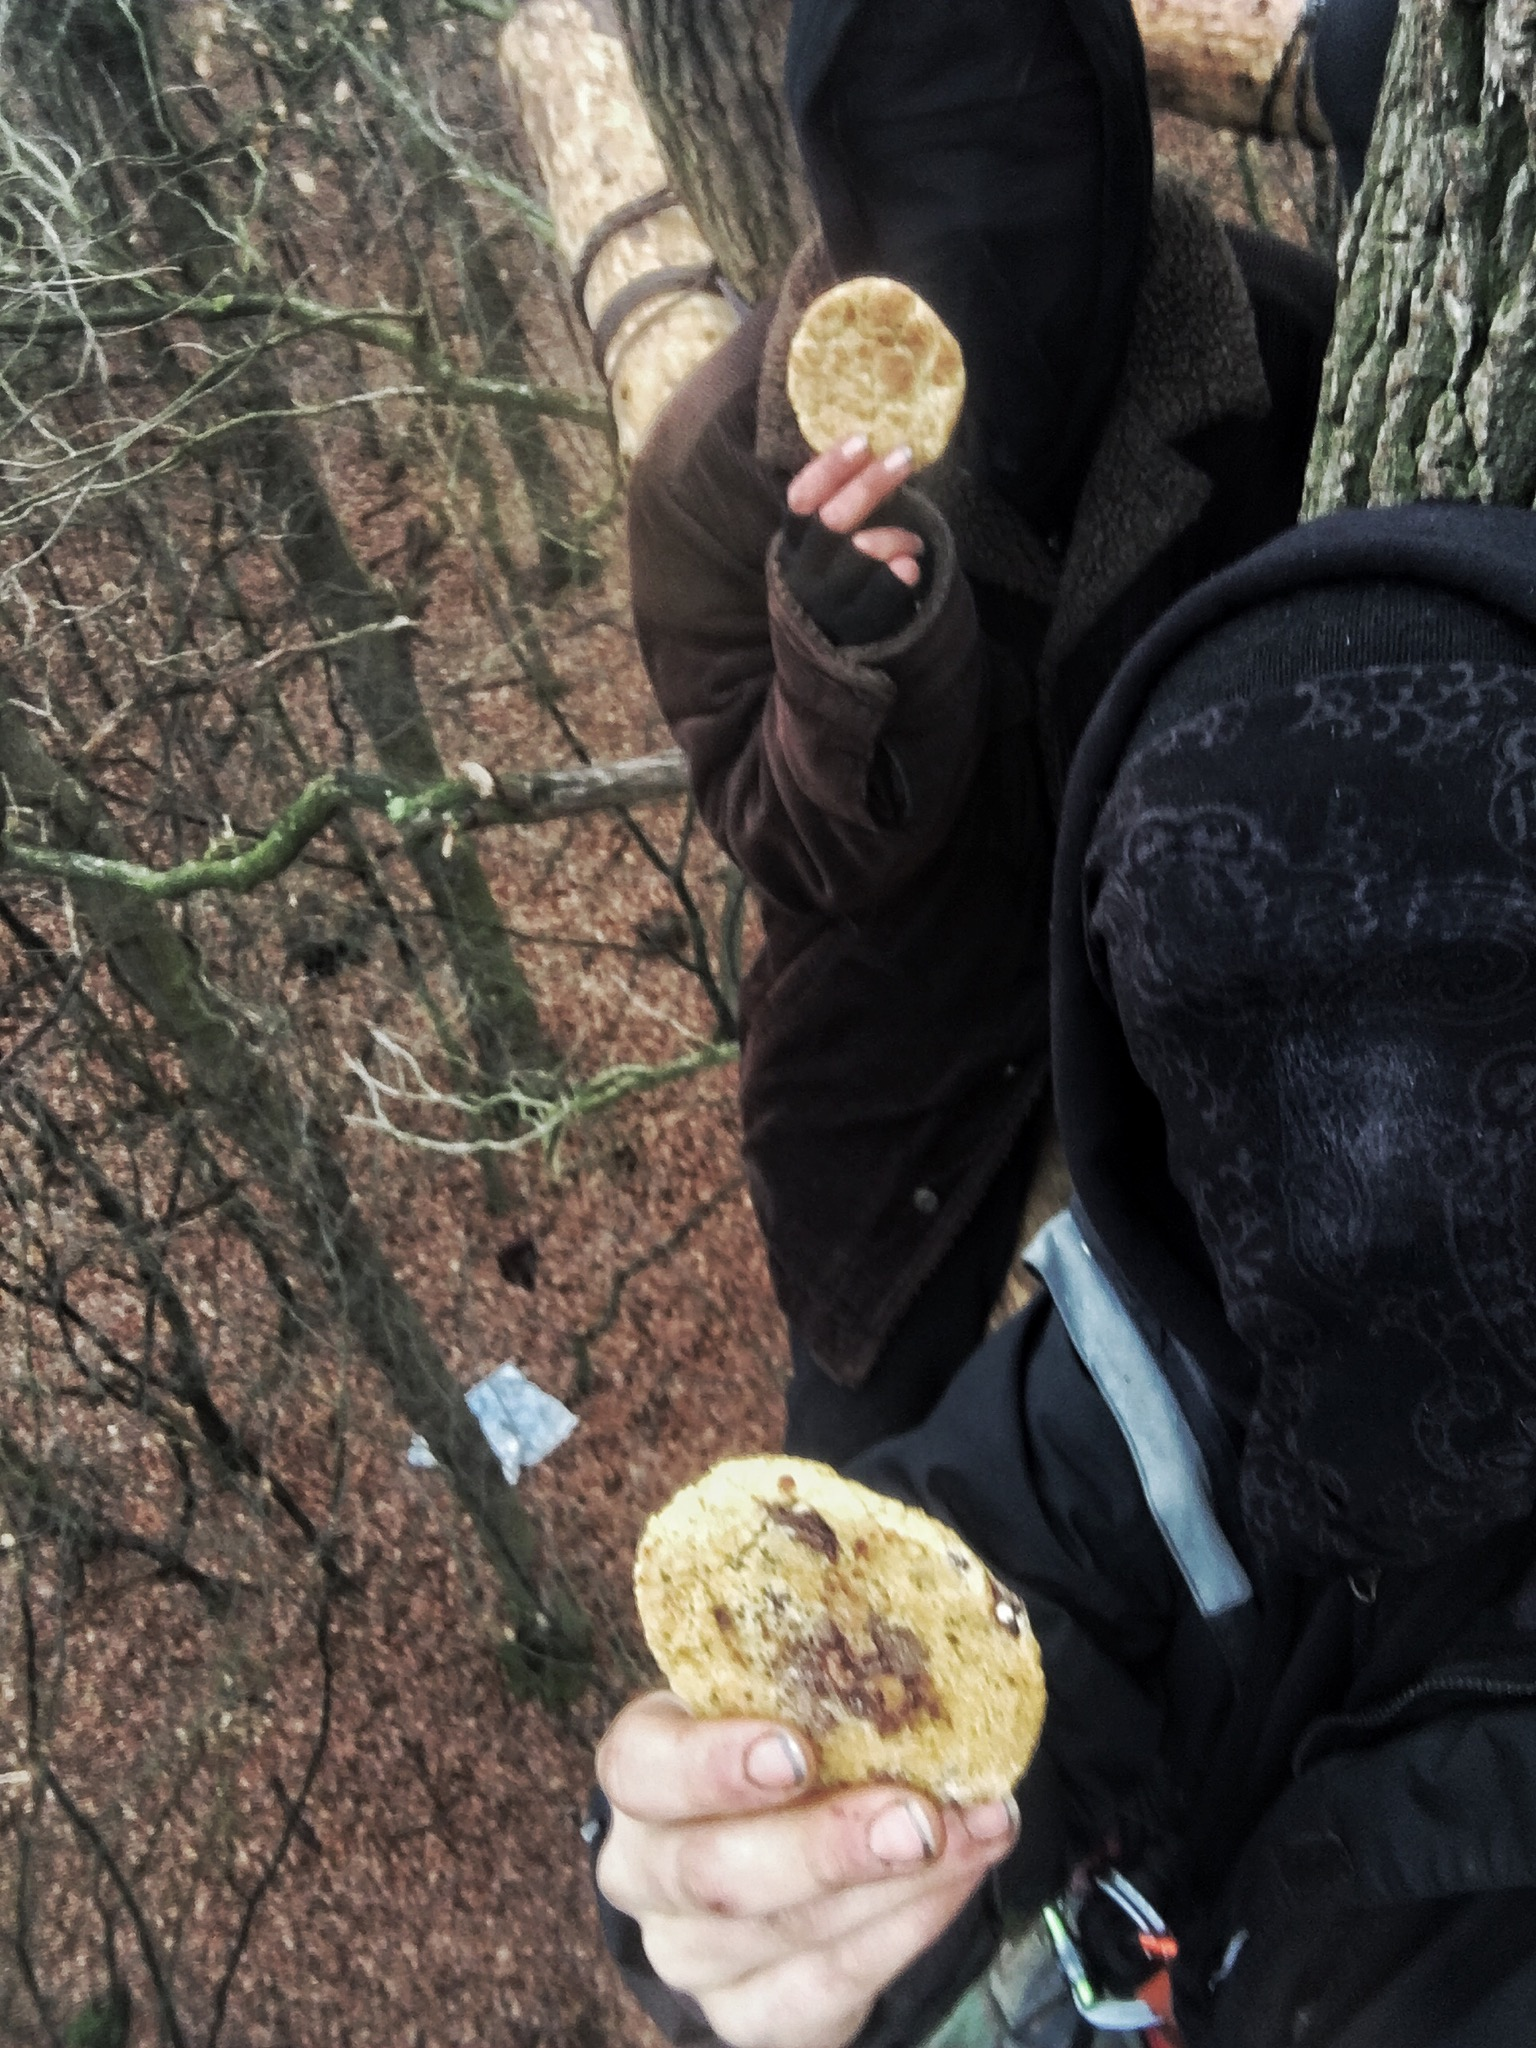 UNOFFENSIVE UPDATE – POLICE REPRESSION IN HAMBACHER FORST